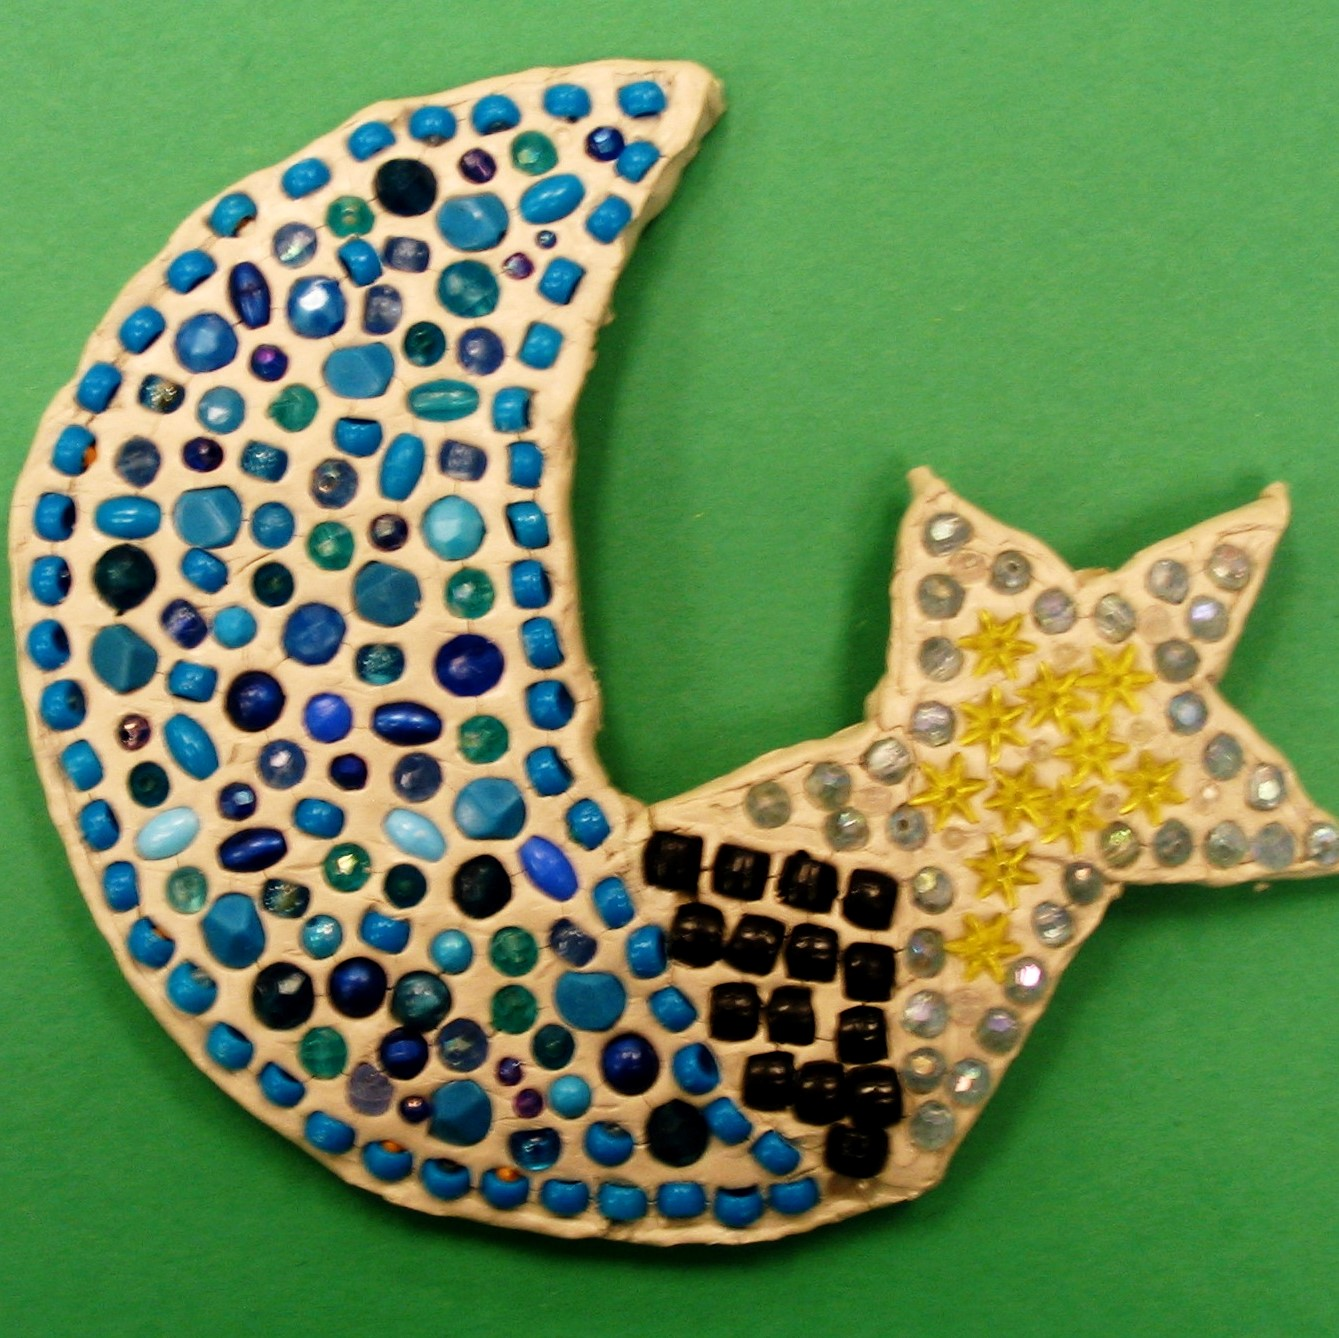 Kidcreate Studio - Woodbury, Best Ever Mosaic Art Project